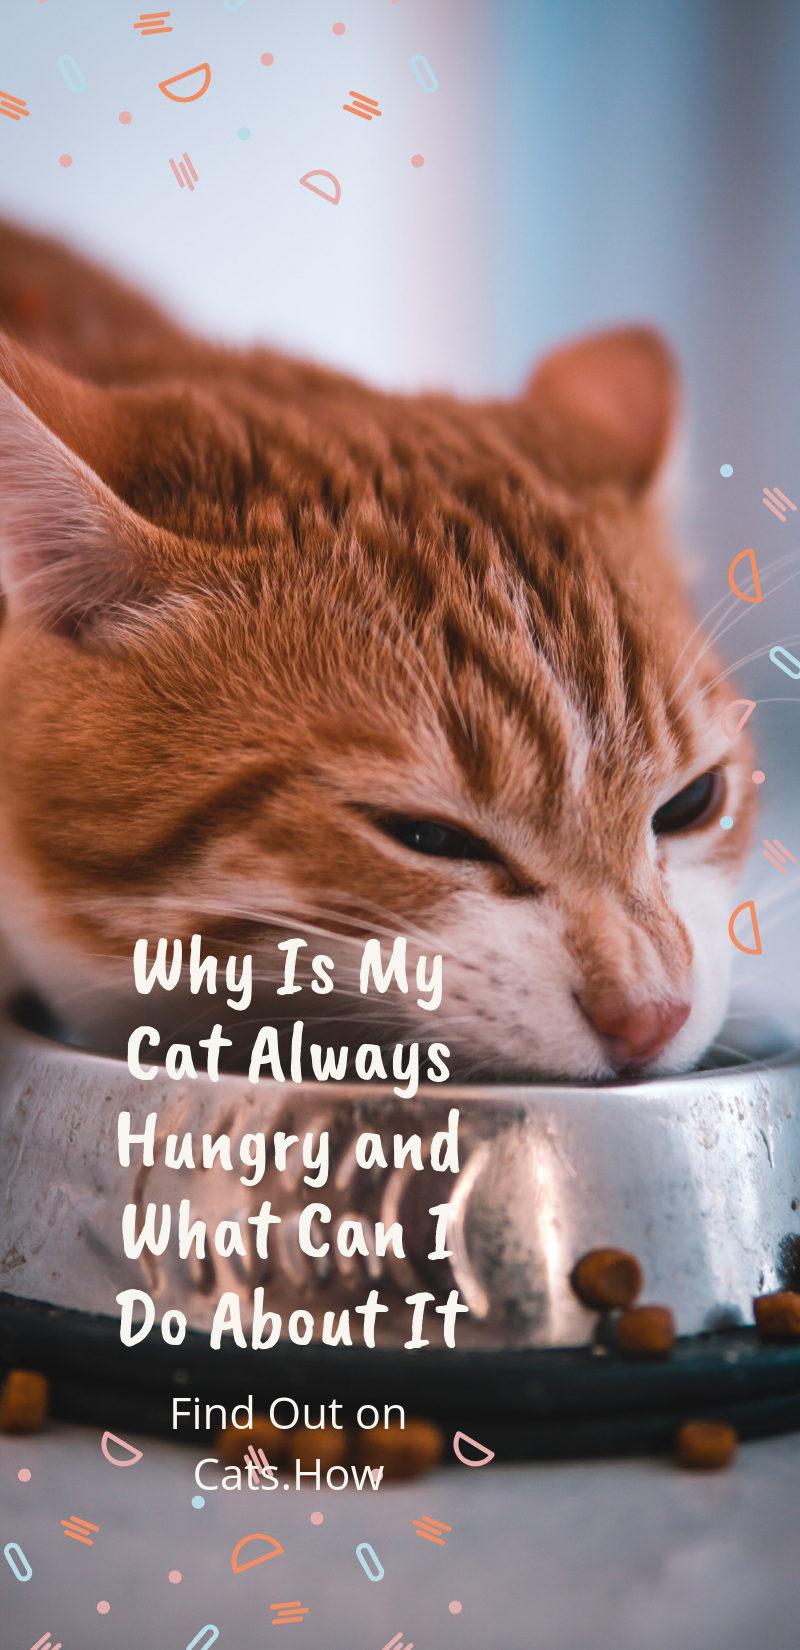 Why Is My Cat Always Hungry and What Can I Do About It